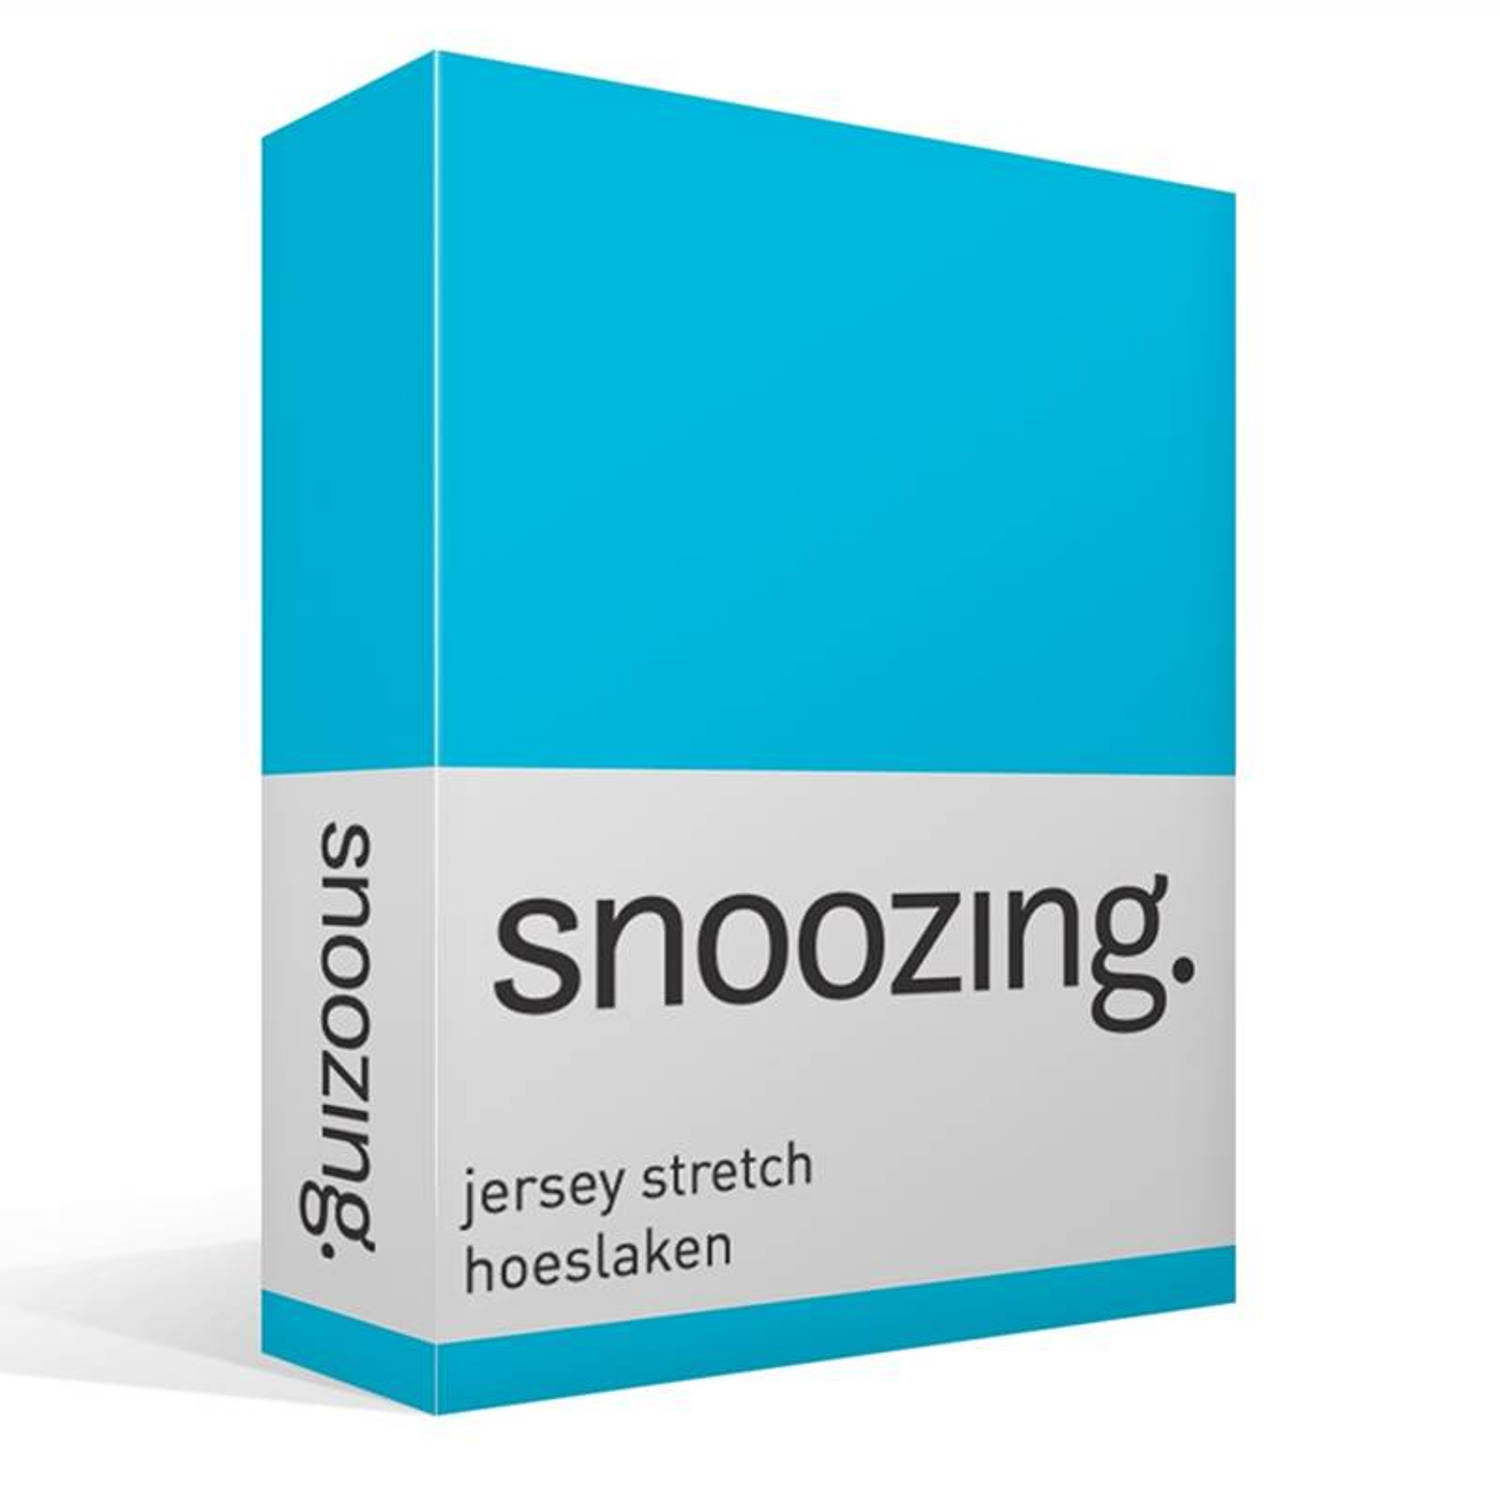 Snoozing jersey stretch hoeslaken - 1-persoons (70/80x200/220 cm)